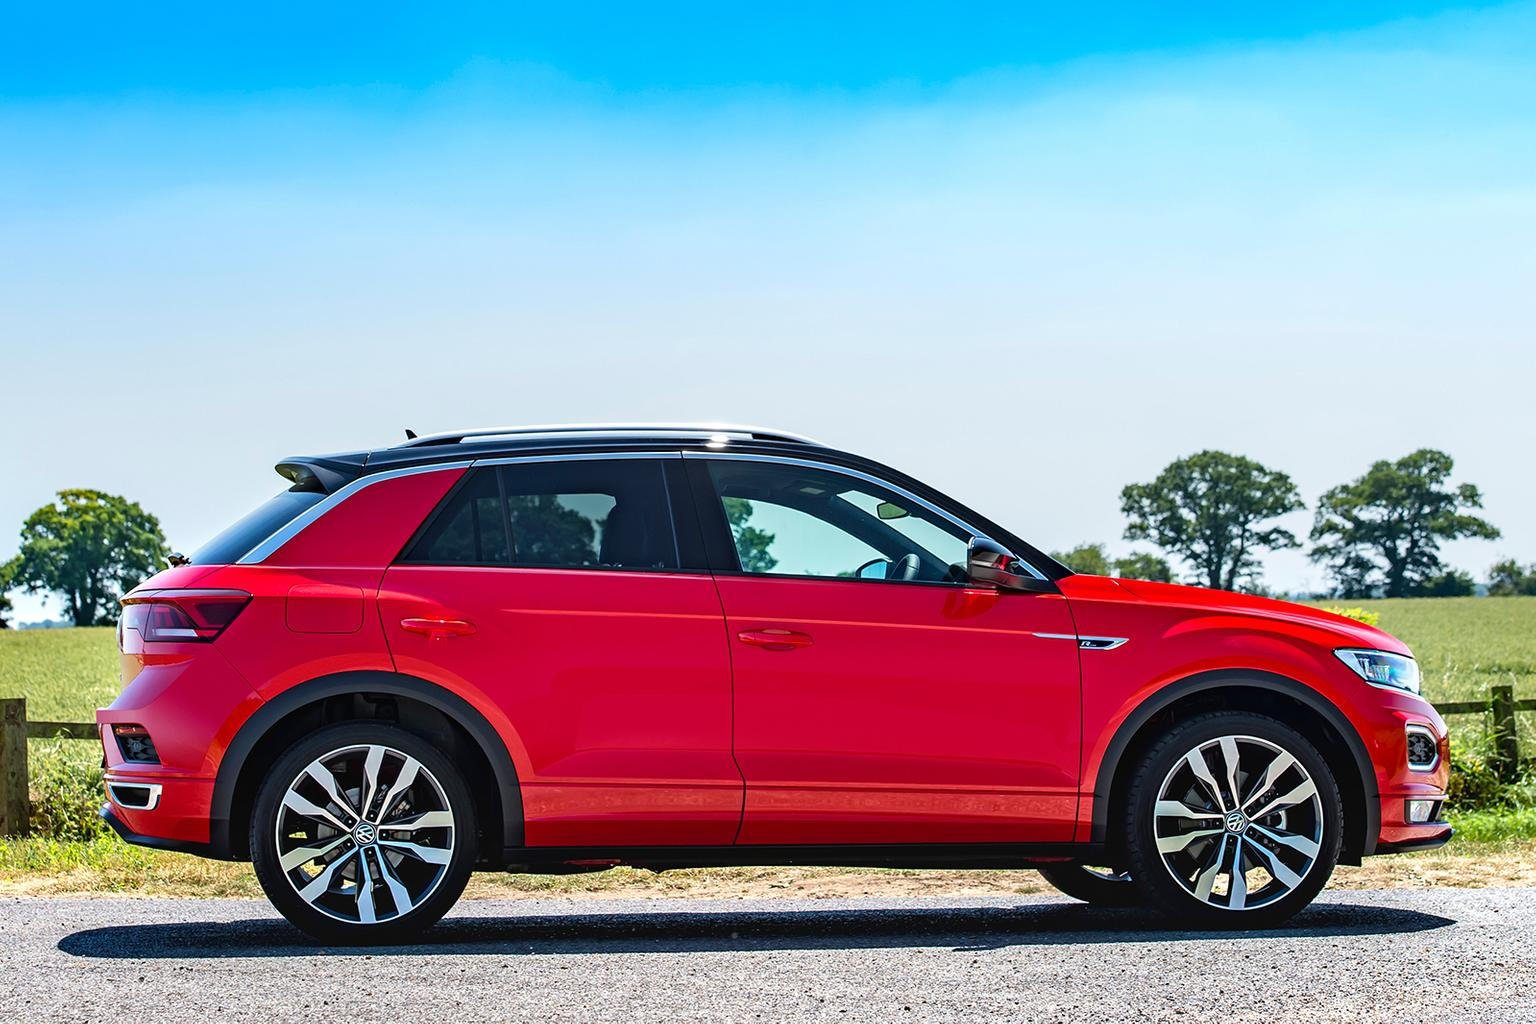 2018 Volkswagen T-Roc 1.5 TSI DSG R-Line review - price, specs and release date